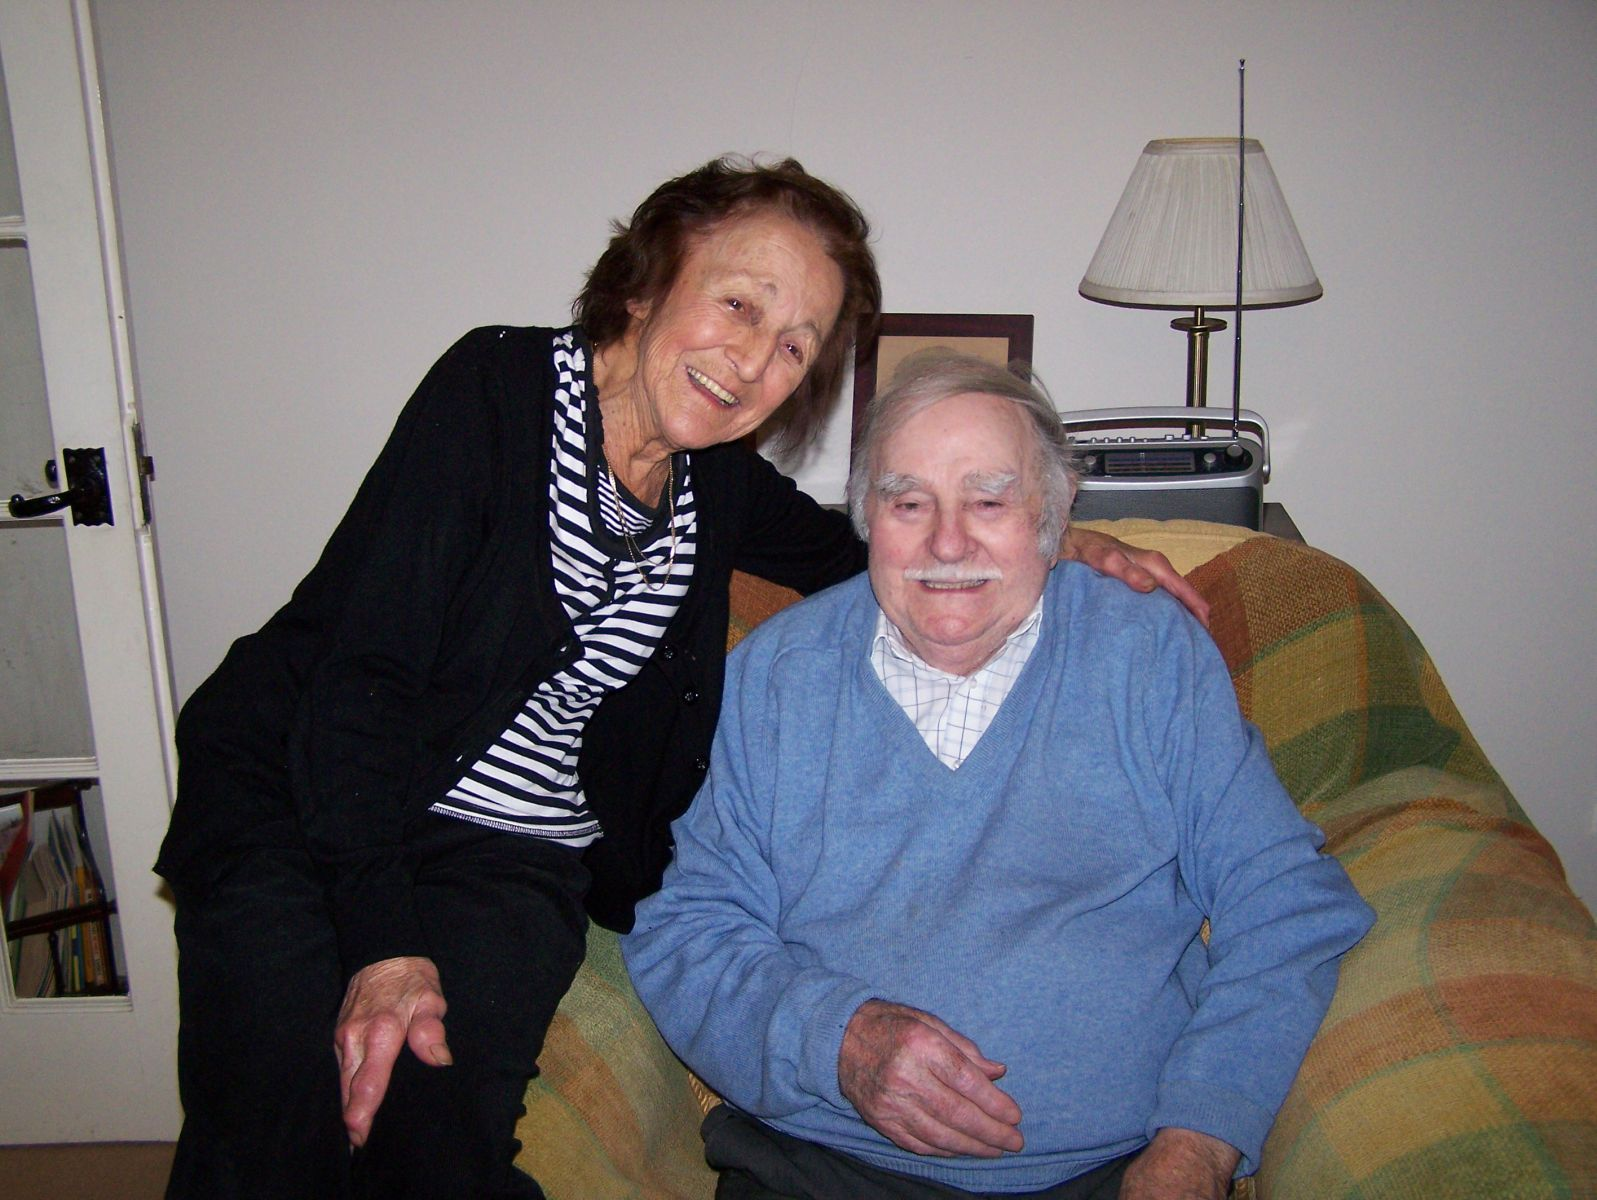 Frank Barratt November 2014 with wife Kay